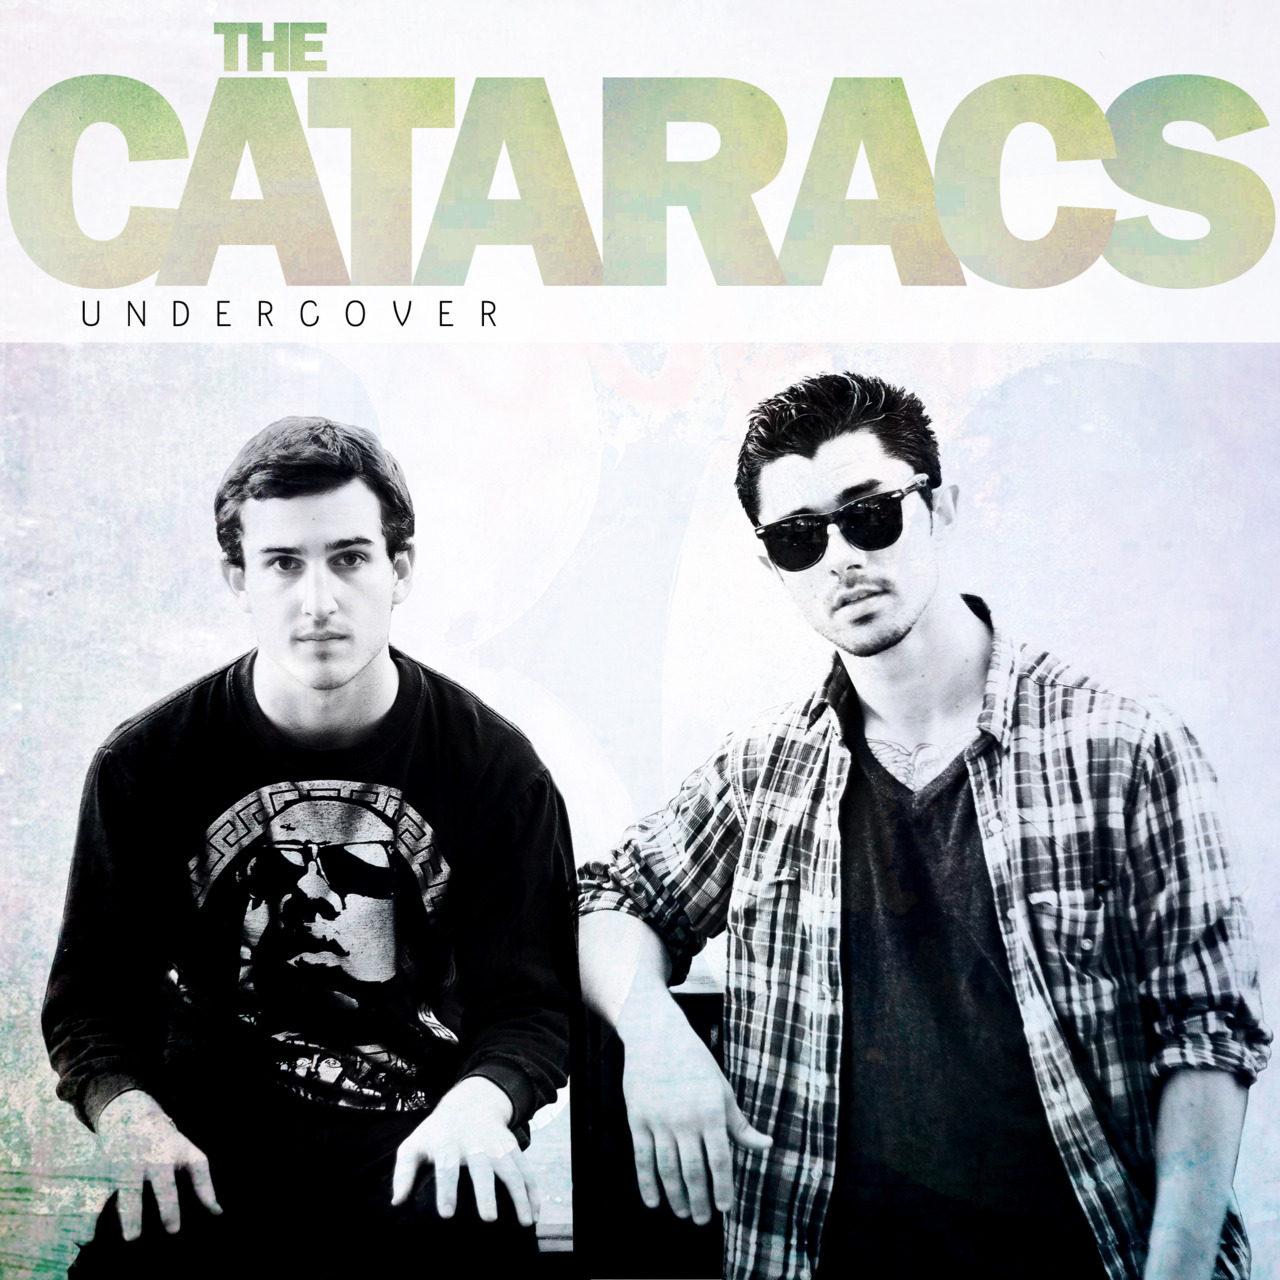 The Cataracs - Undercover - Vinyl Artwork